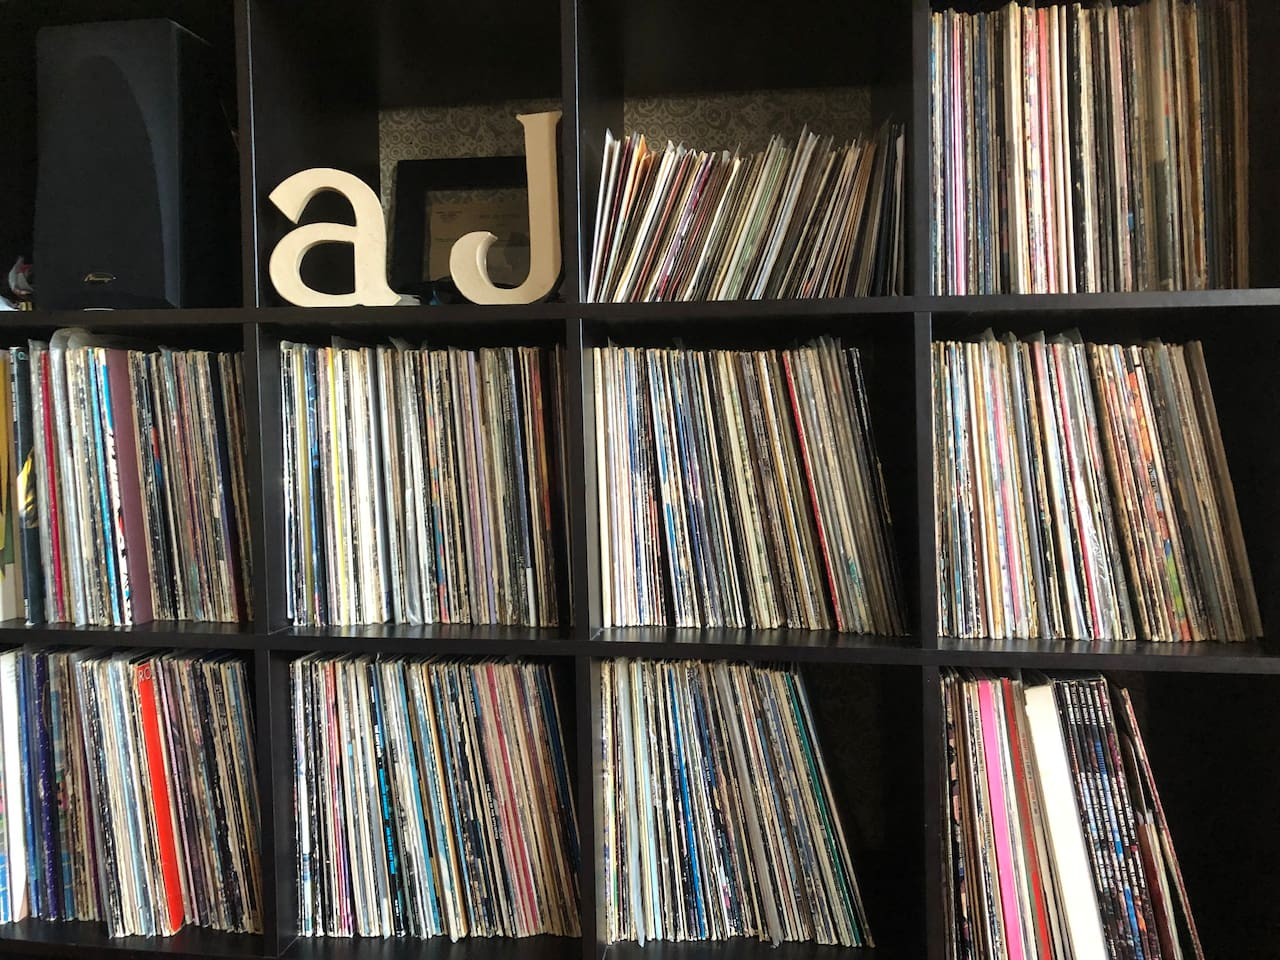 Music lovers will love this record collection with over 1,000 records in numerous genres,